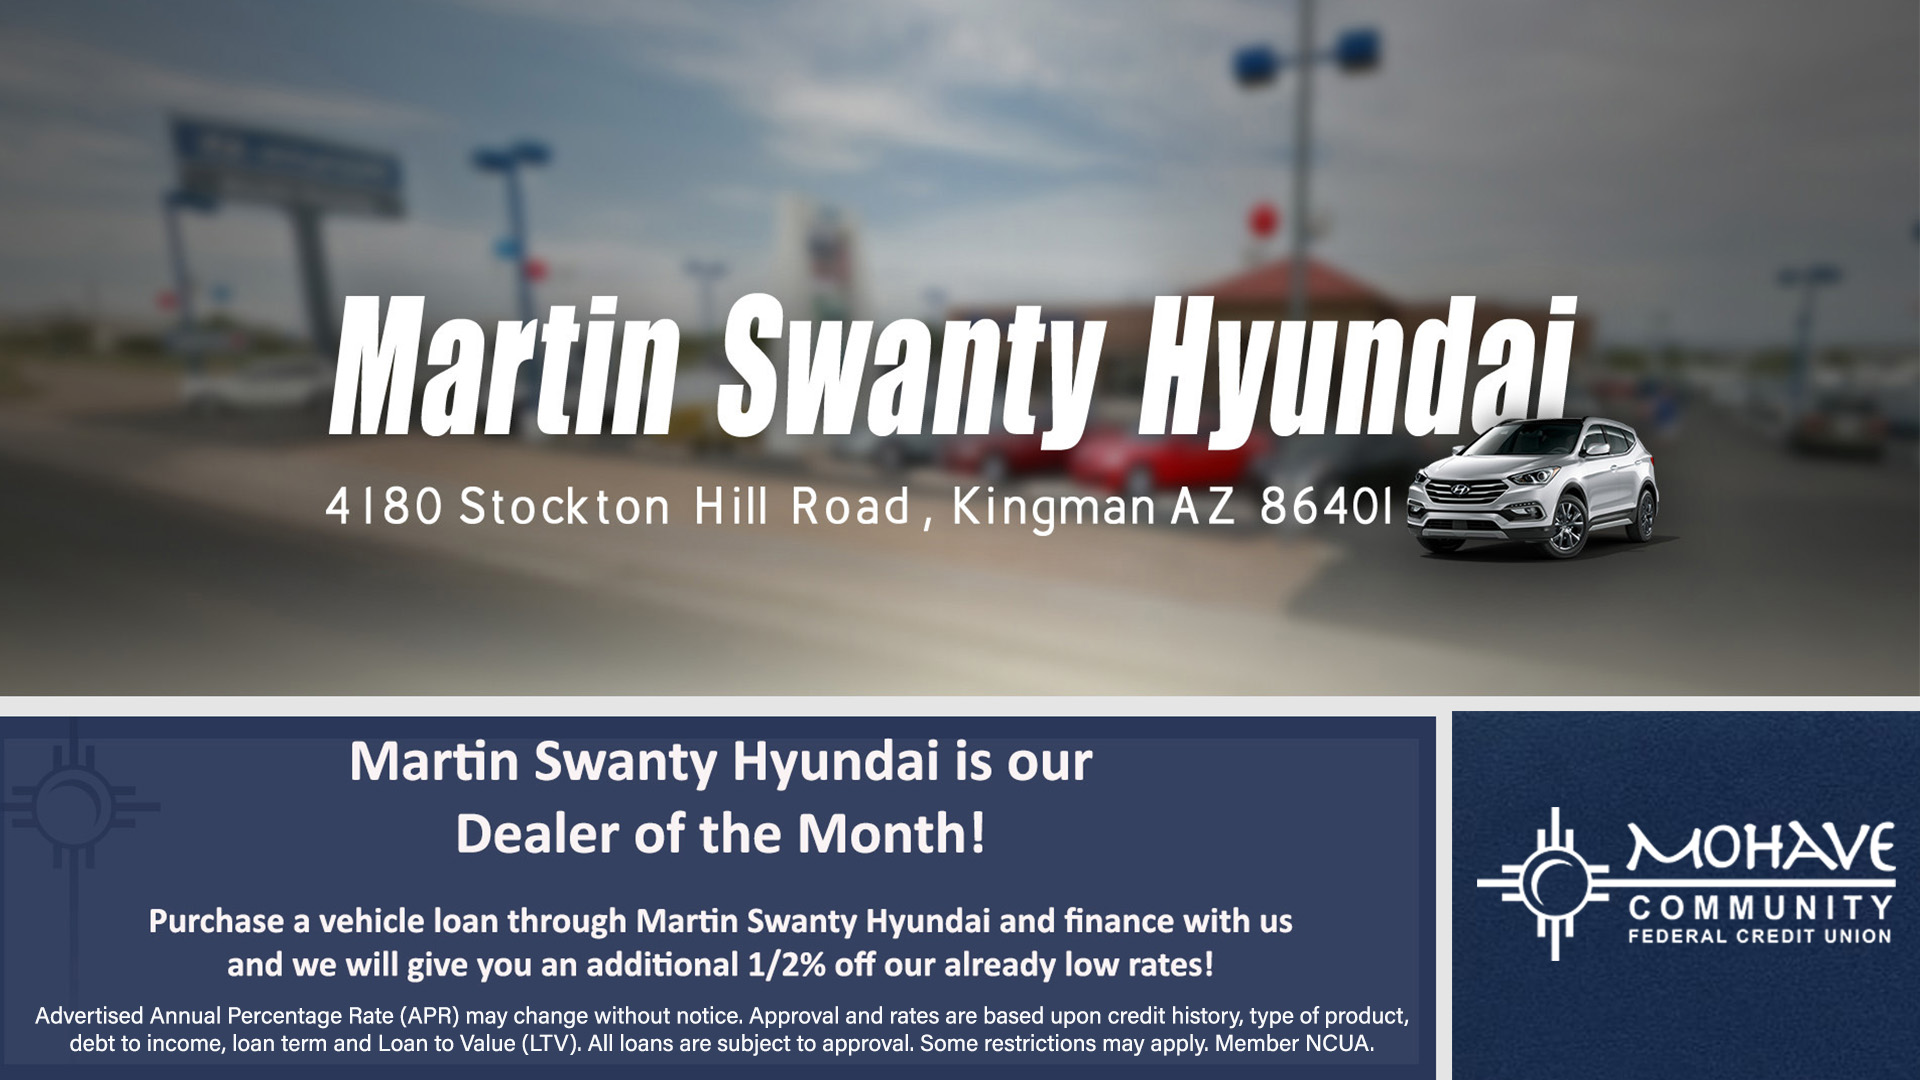 Martin Swanty Hyundai of Kingman is our Auto Dealer for the month of May 2021! When you finance your Martin Swanty Hyundai purchase with Mohave Community Federal Credit Union you will receive an additional 1/2% off your approved Annual Percentage Rate (APR). Advertised Annual Percentage Rate (APR) may change without notice. Approval and rates are based upon credit history, type of product, debt to income, loan term and Loan to Value (LTV). All loans are subject to approval. Some restrictions may apply. Member NCUA.